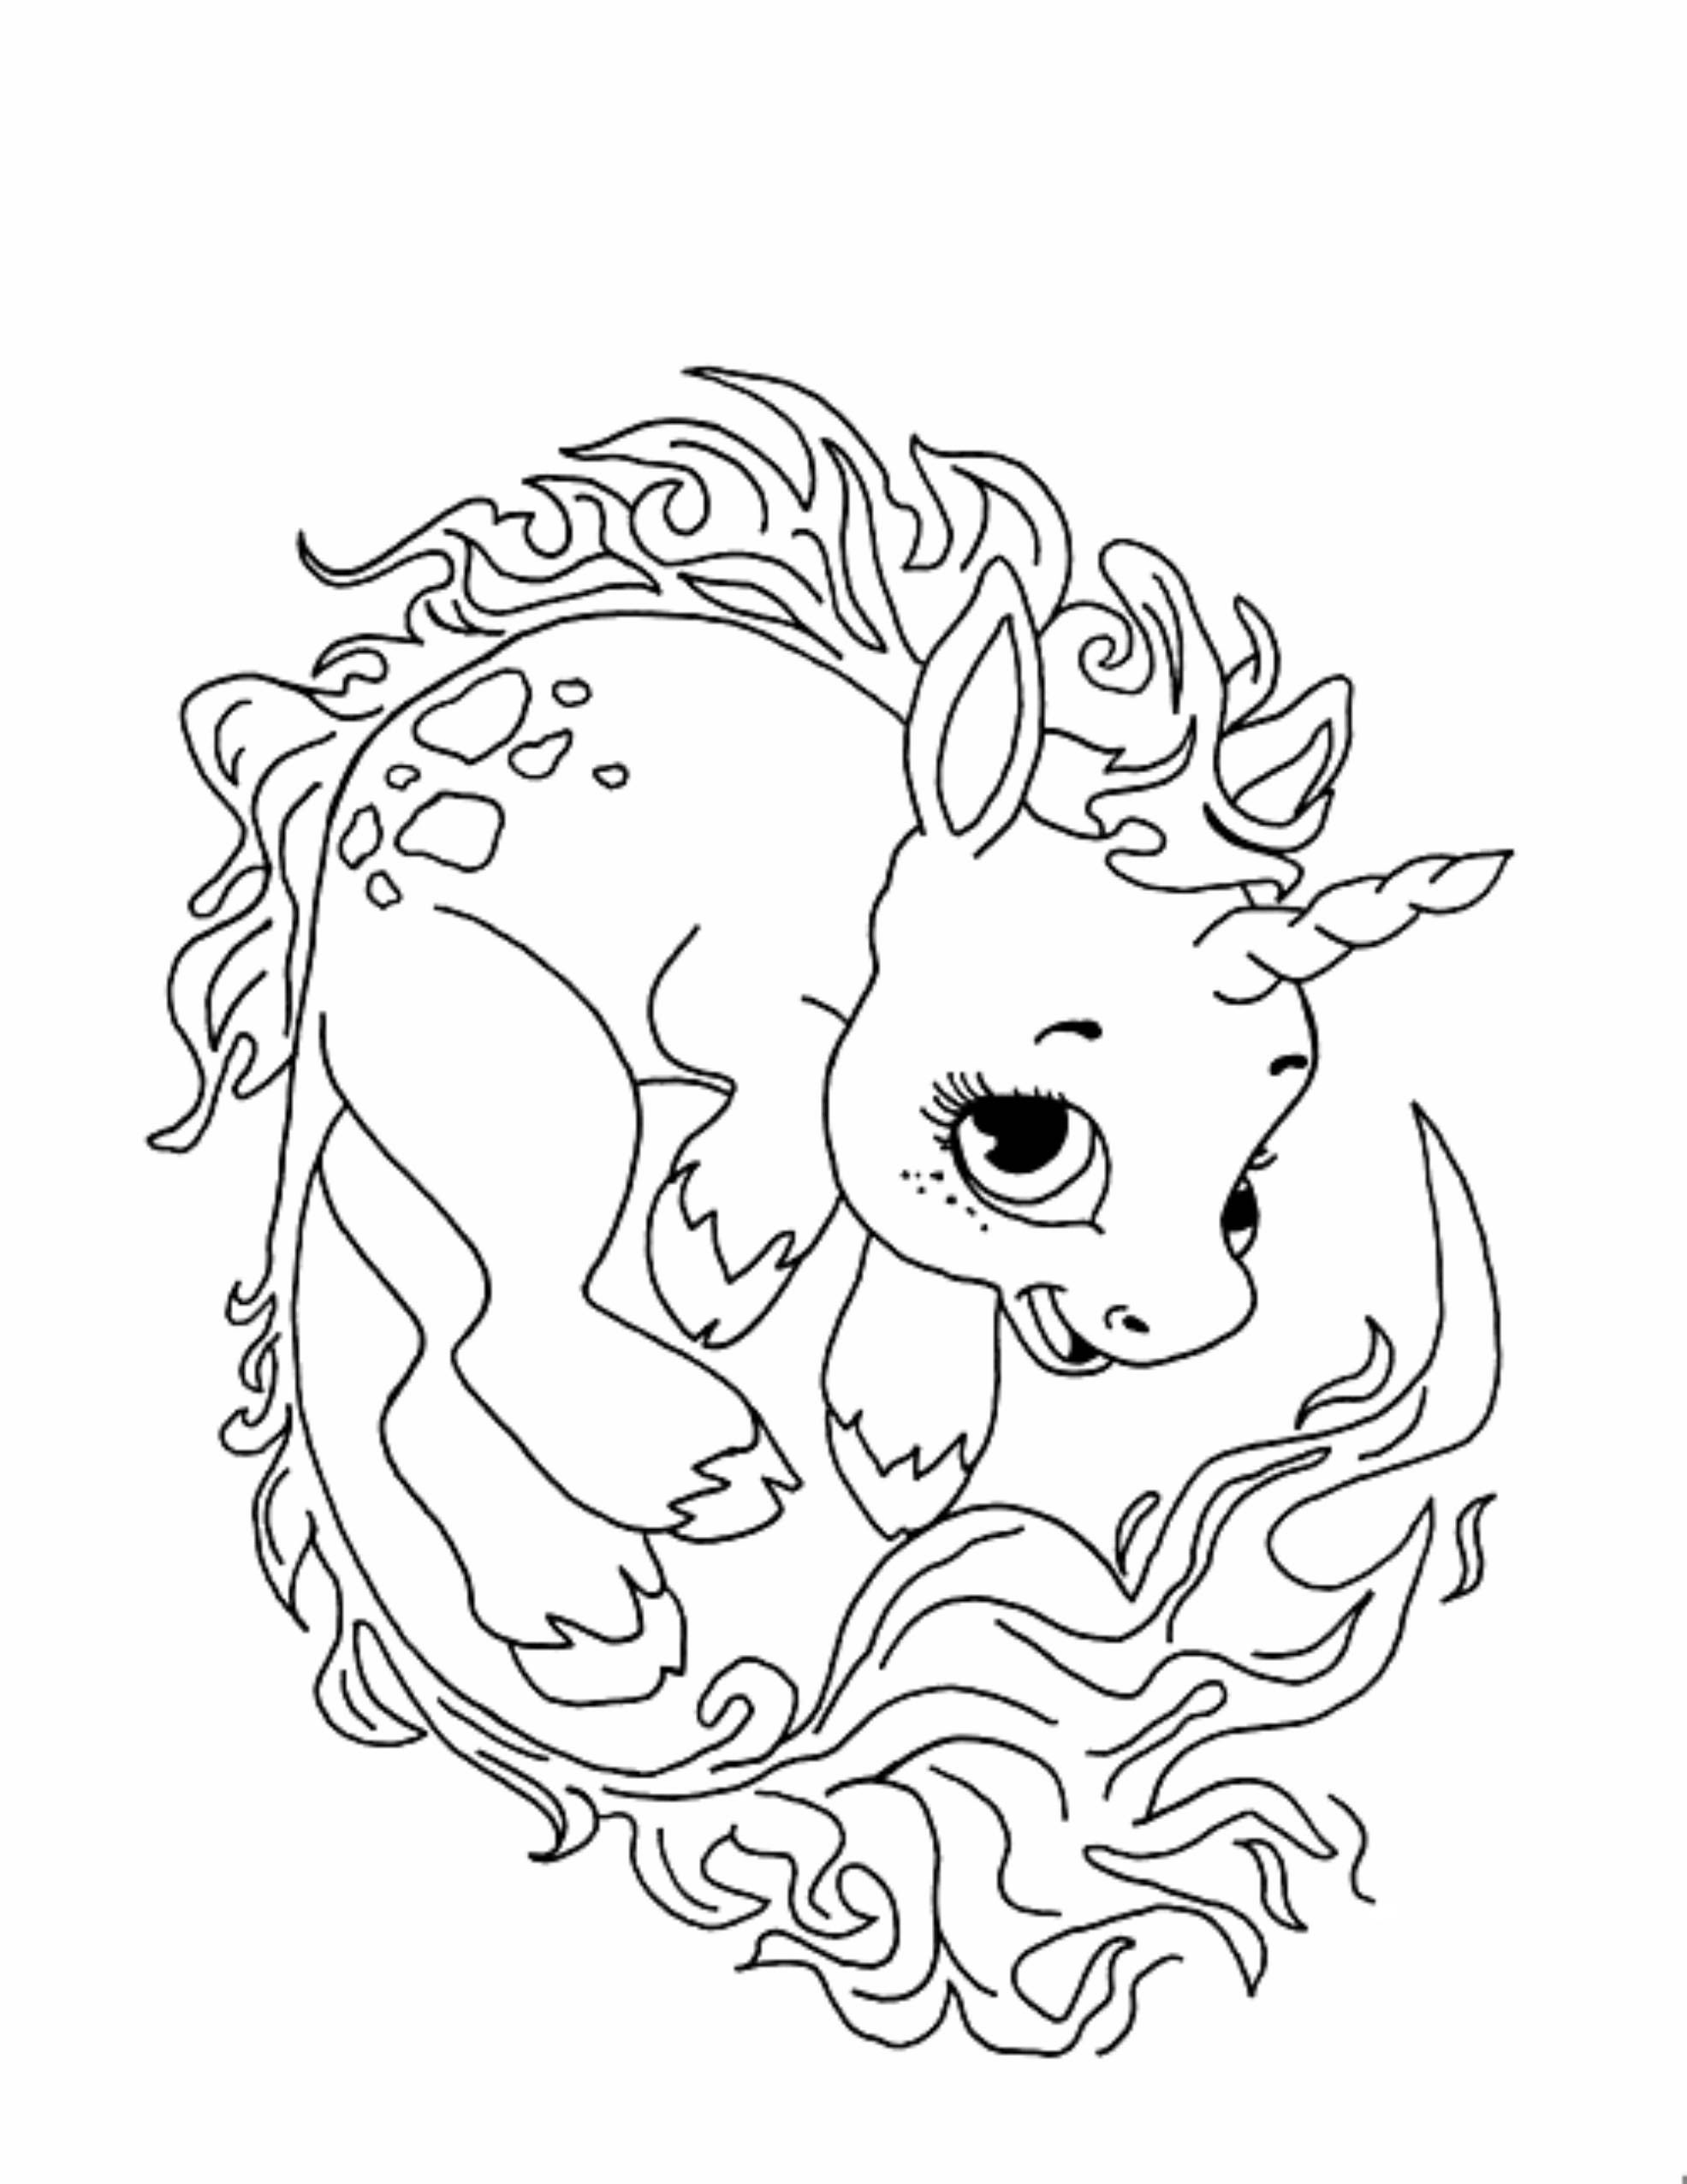 Coloring Pages Of Cute Unicorns at GetColorings.com | Free ...